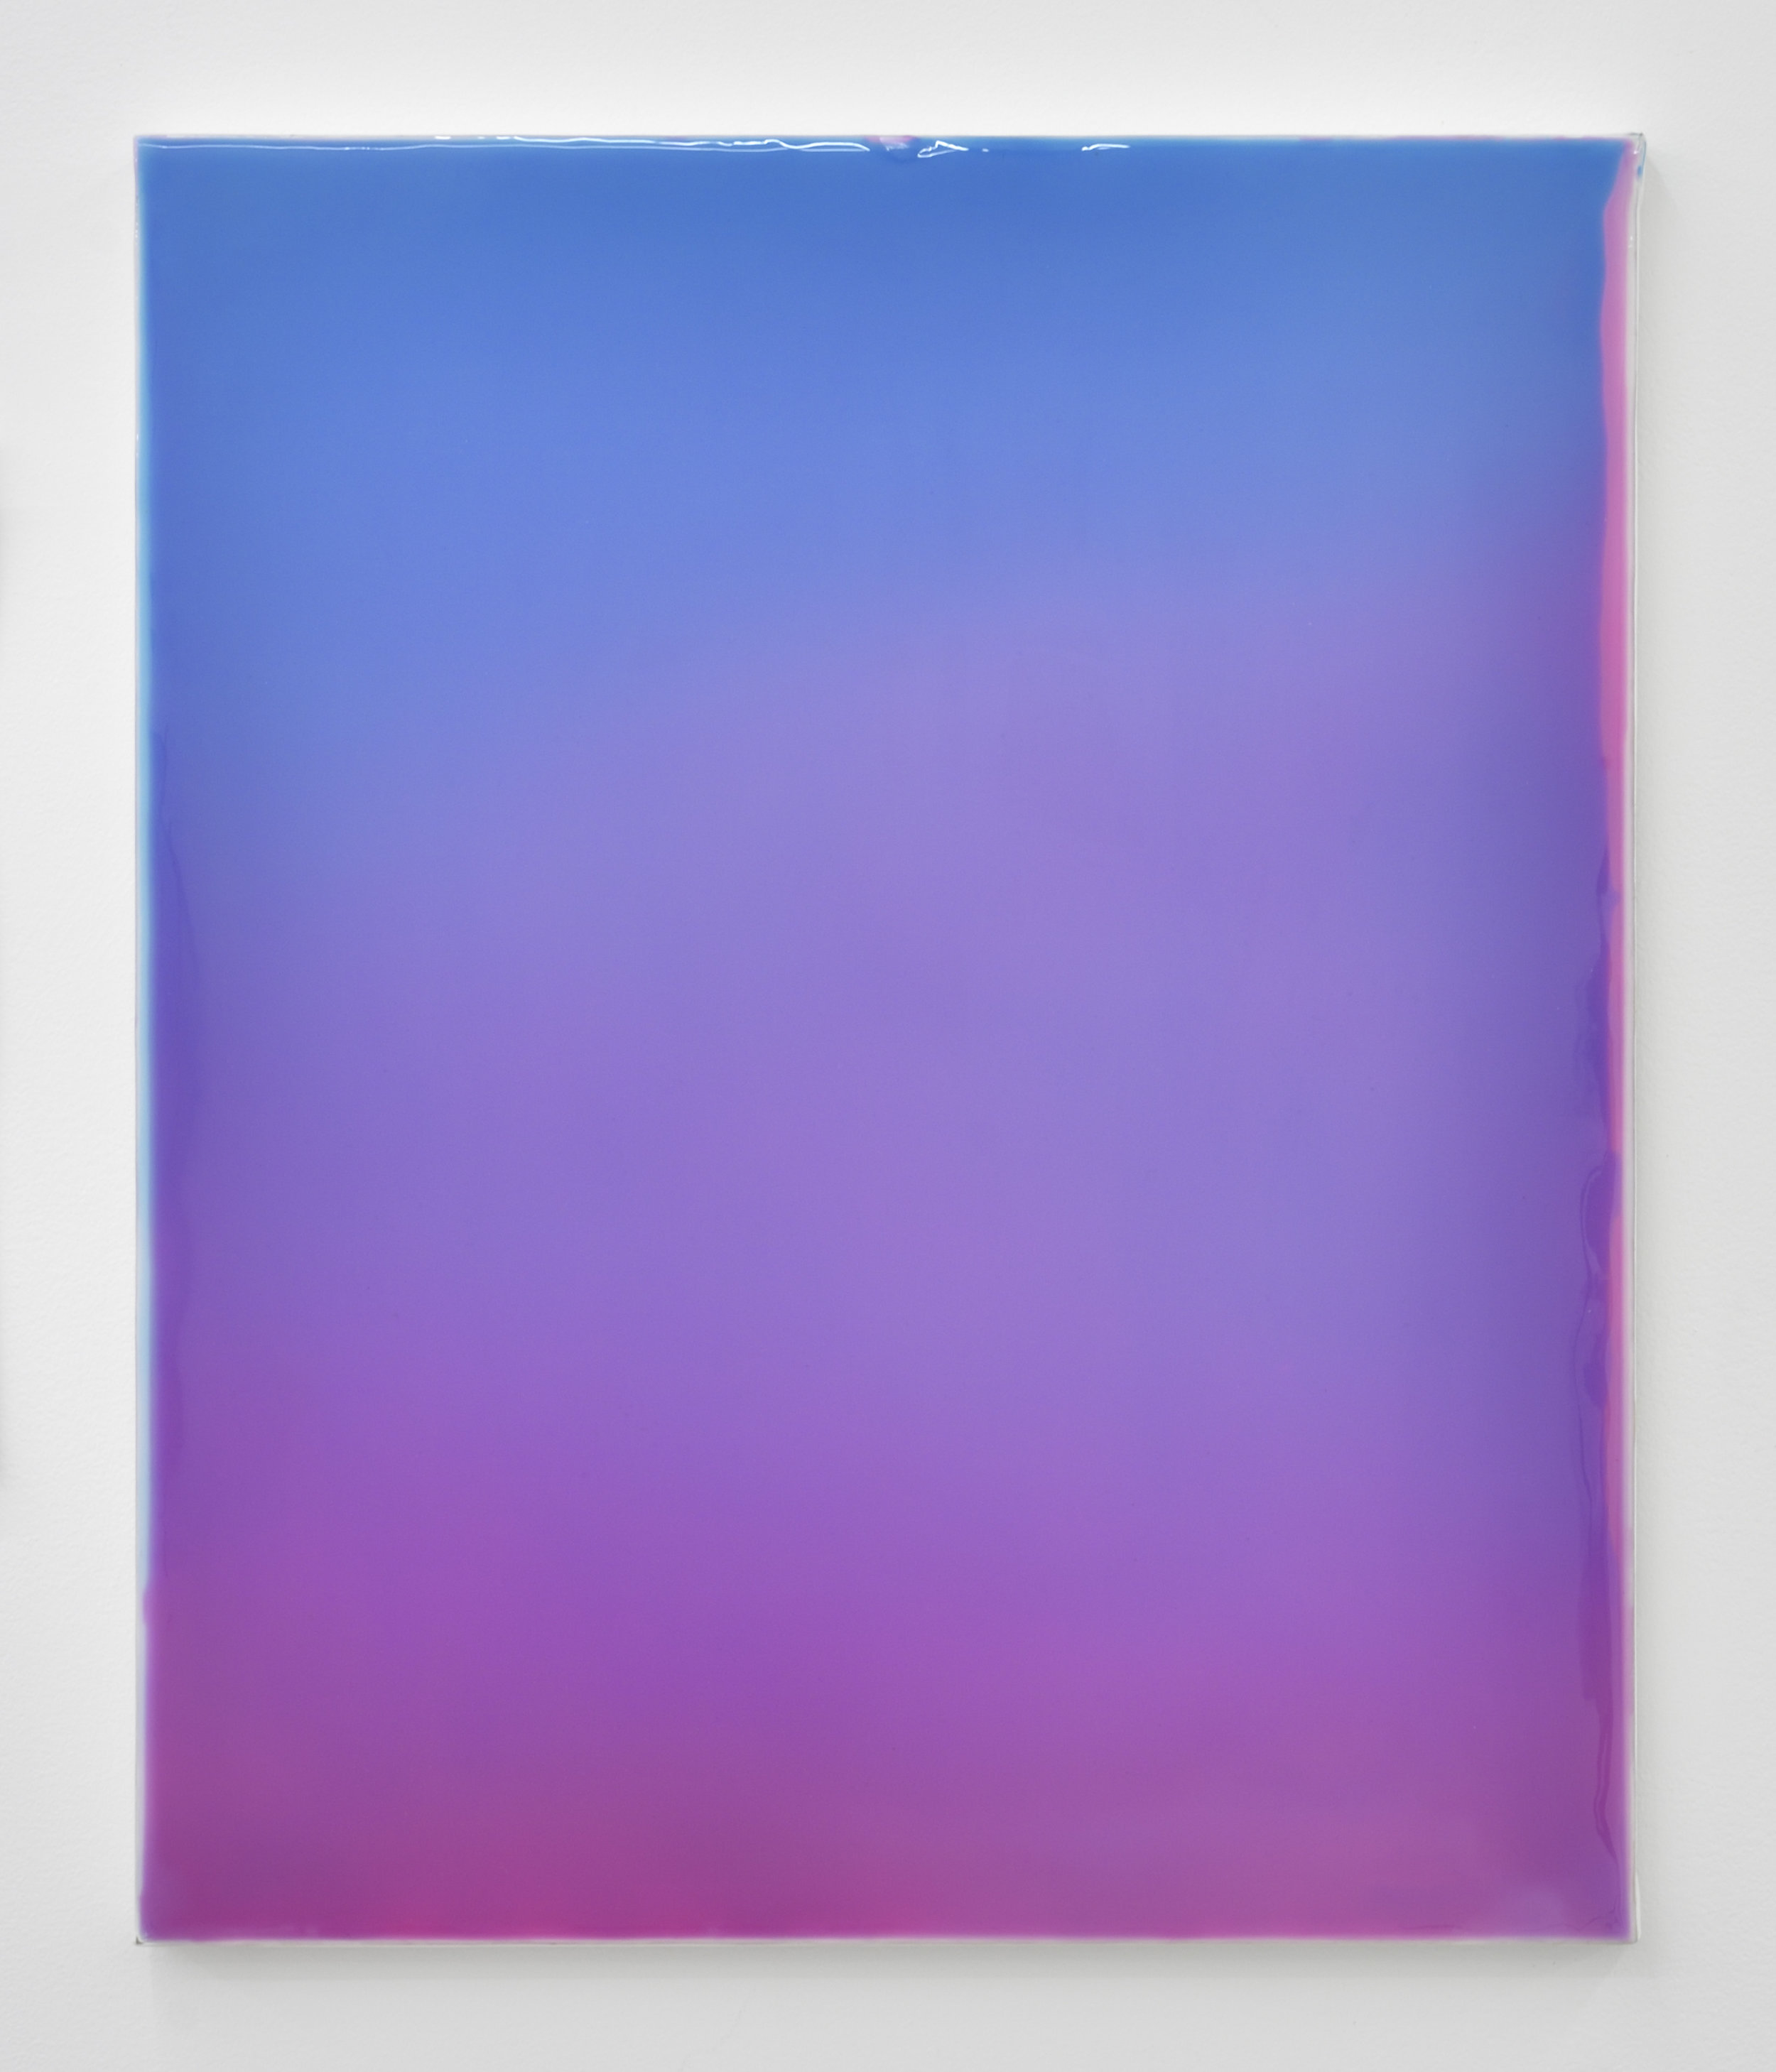 Gilles Teboul, Untitled 1870, 2017 acrylic and resin on canvas 61 x 50 cm - 24 x 19 11/16 inches